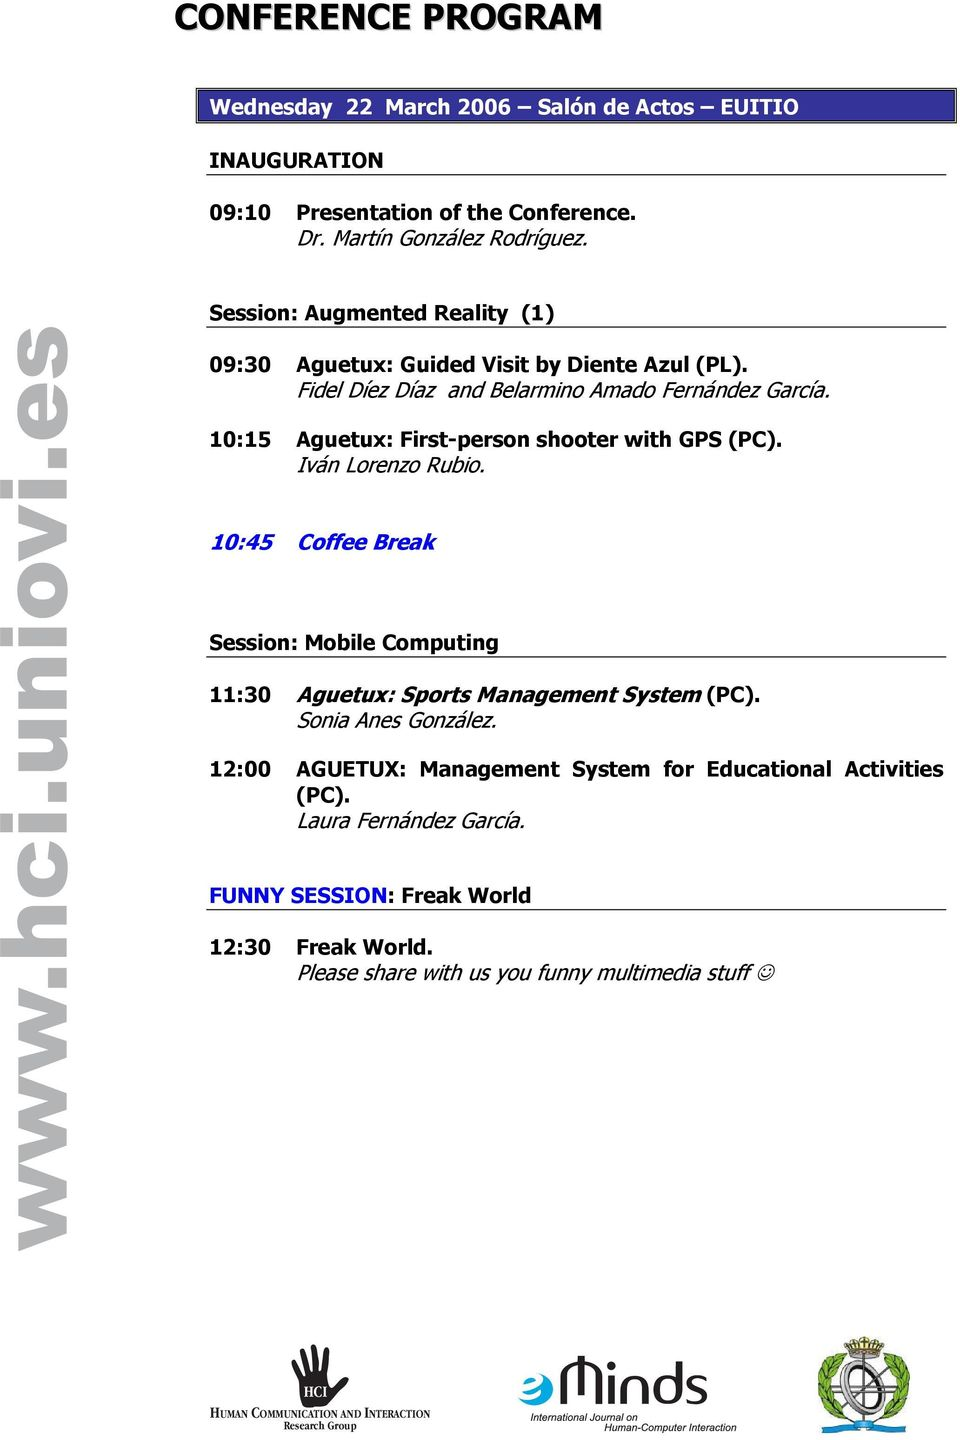 10:15 Aguetux: First-person shooter with GPS (PC). Iván Lorenzo Rubio. 10:45 Coffee Break Session: Mobile Computing 11:30 Aguetux: Sports Management System (PC).